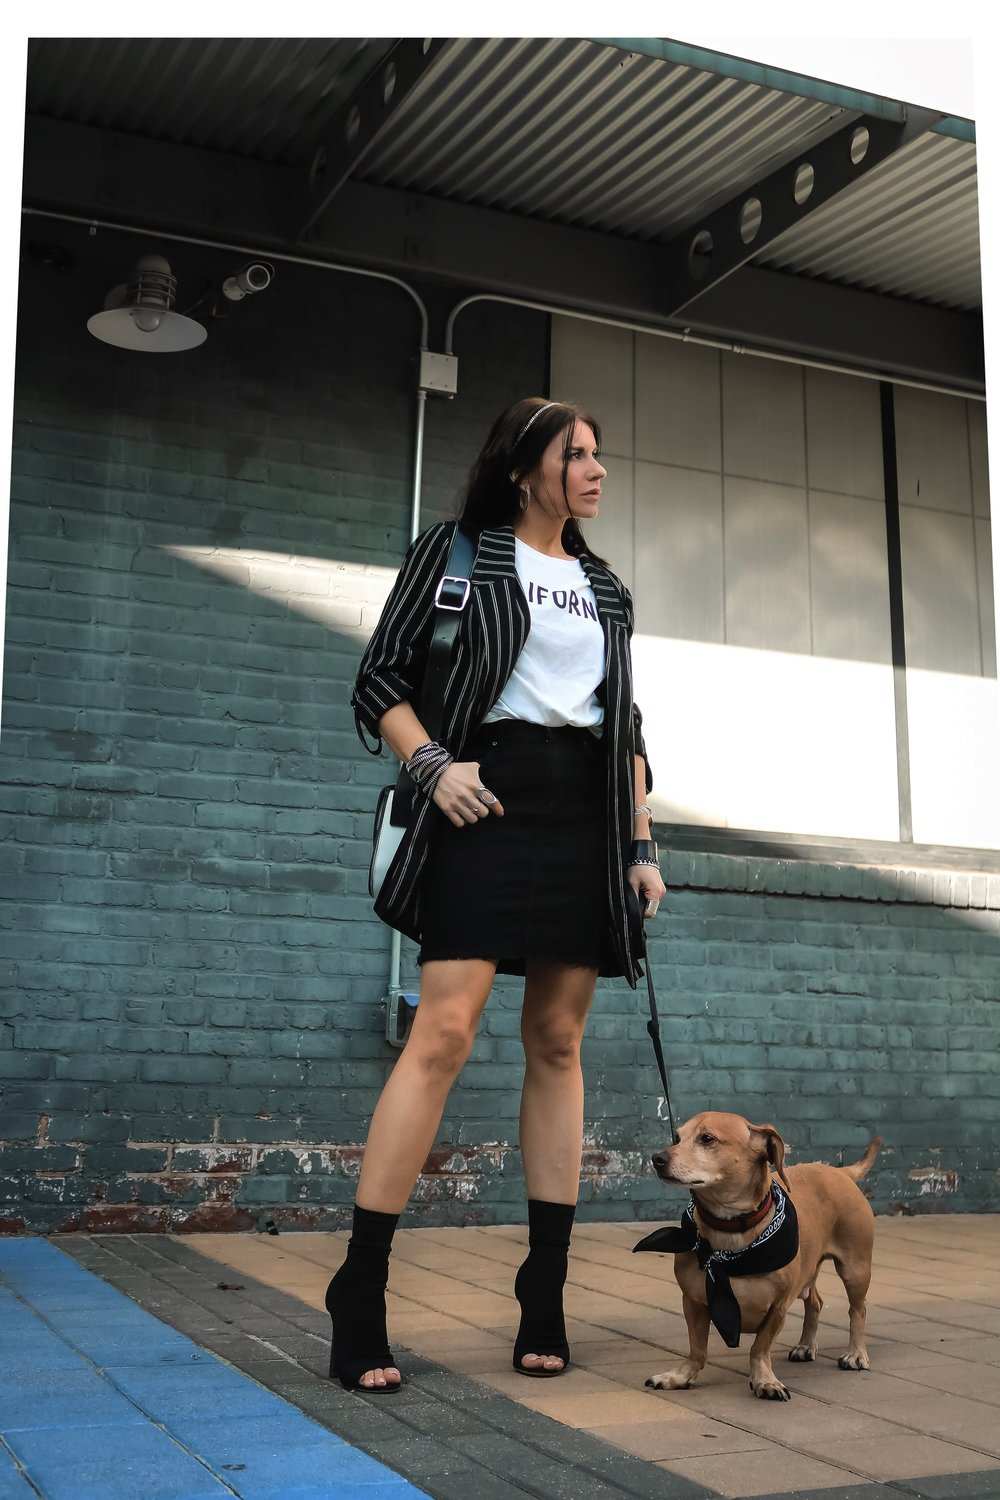 sabel Alexander Wearing Stradivarius Boyfriend Striped Blazer H&M Studded Denim Skirt With Her Daschund Dog